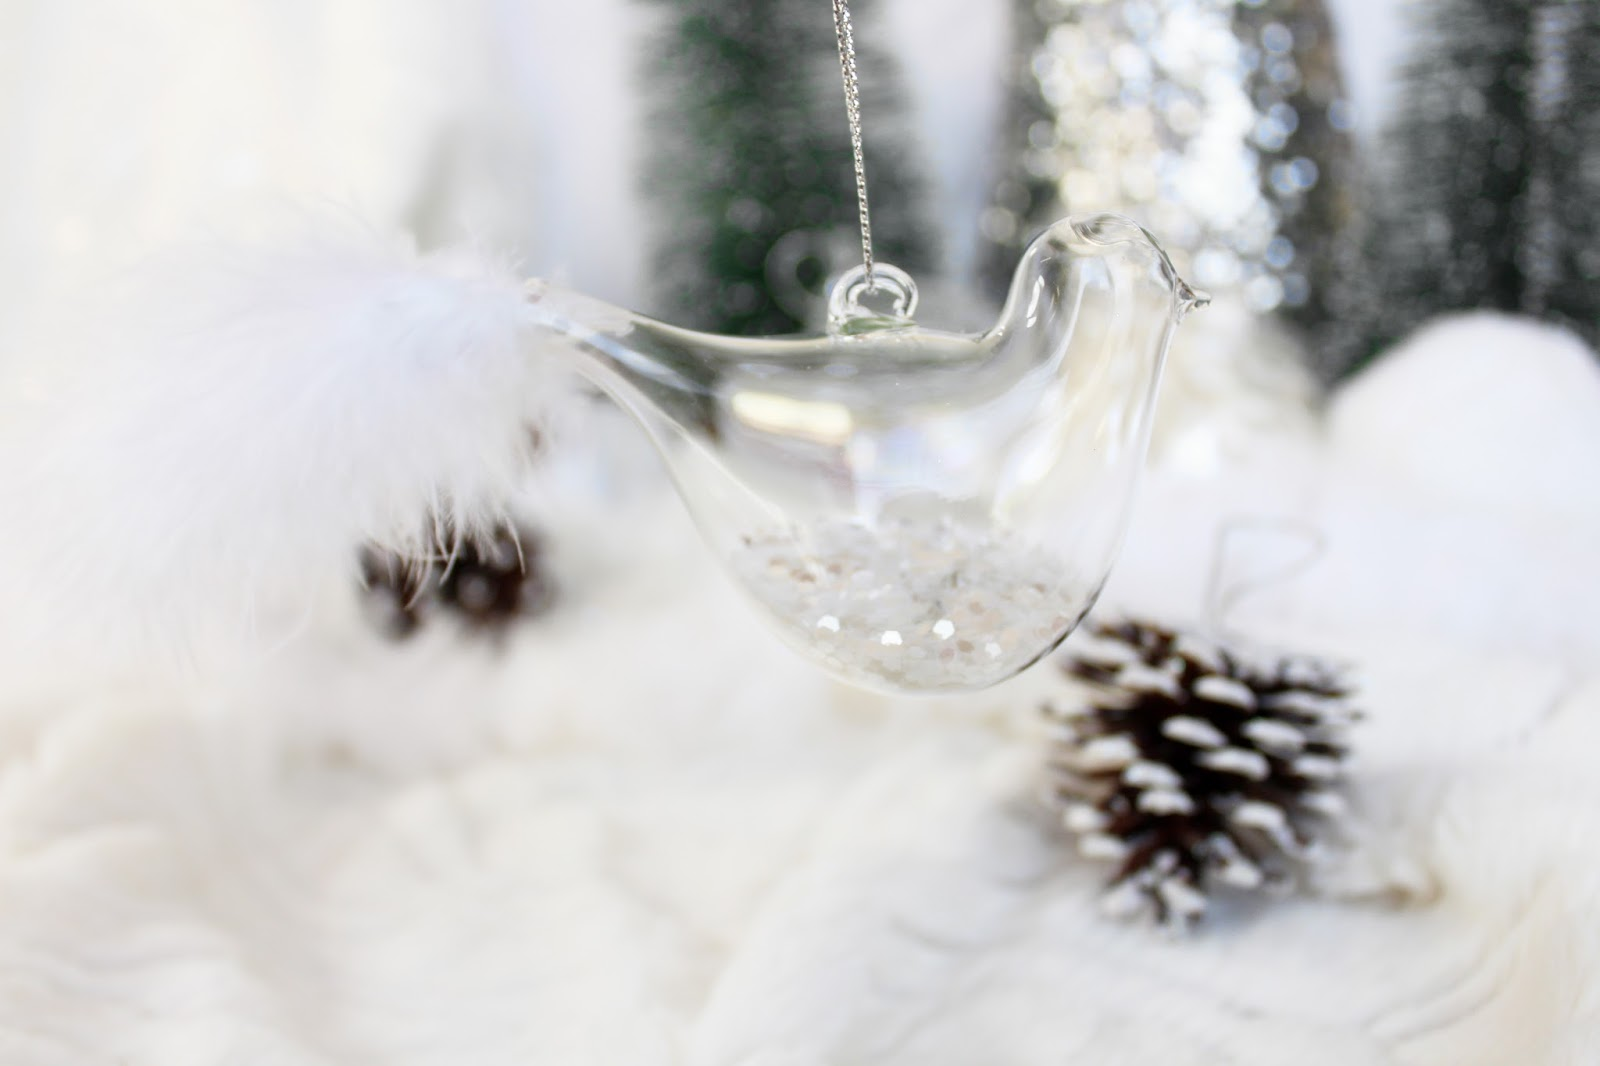 Sneak Peek: Christmas Decorations Haul & How We'll Be Decorating Our Home This Year